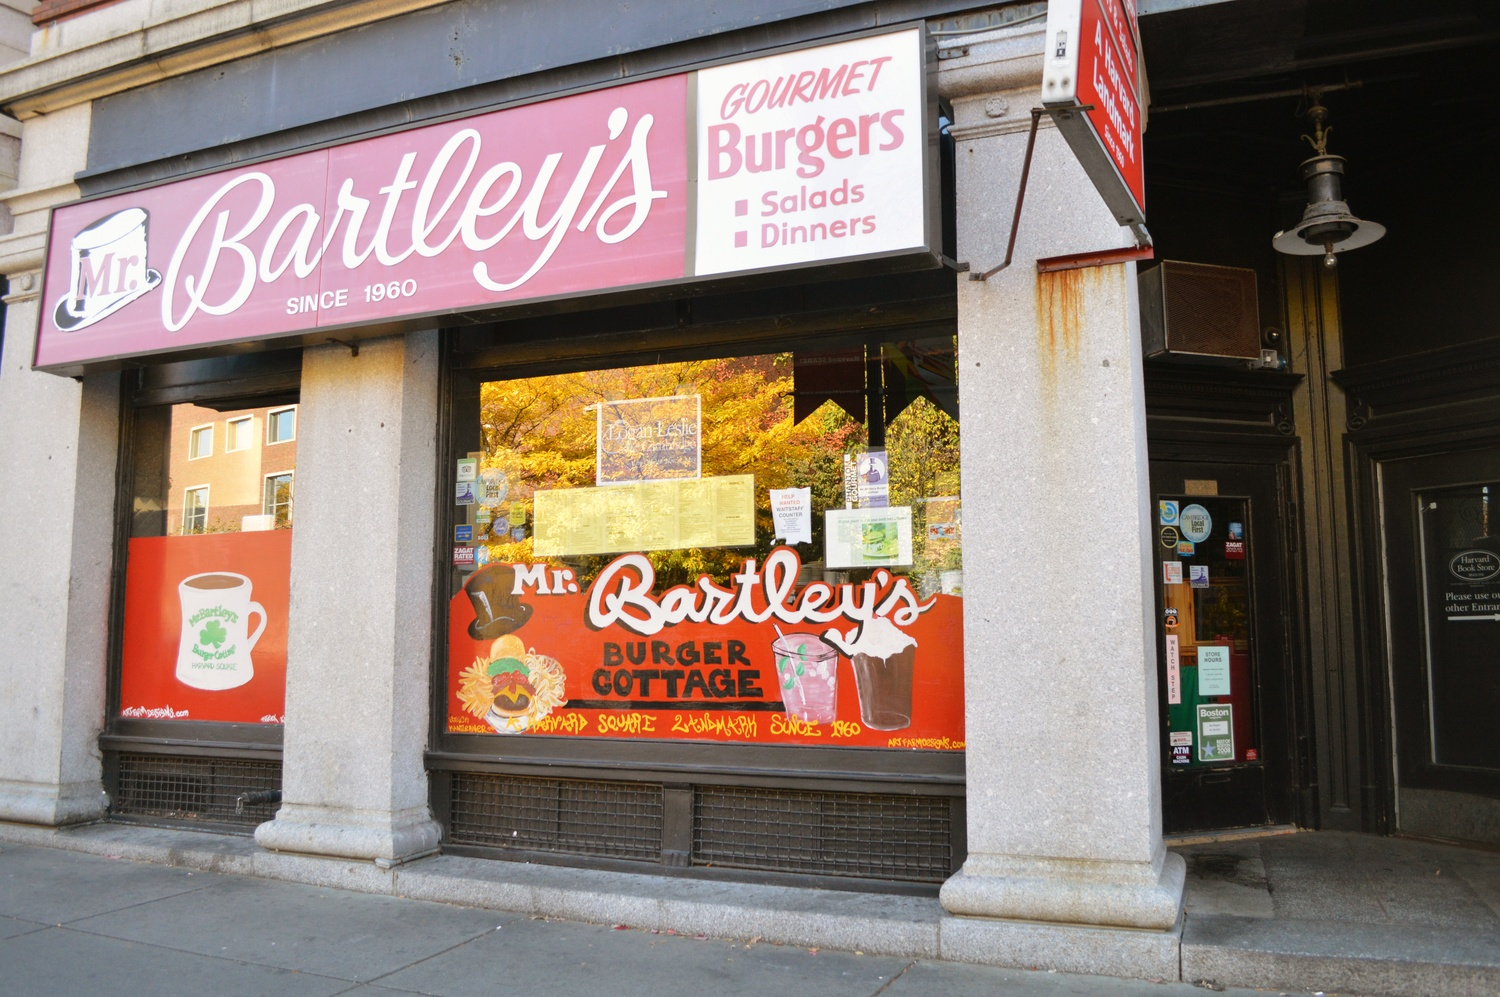 Bartley's Burgers is famous for having creatively named menu items. In this piece, FM comes up with Bartley's Burgers: Professor Edition.